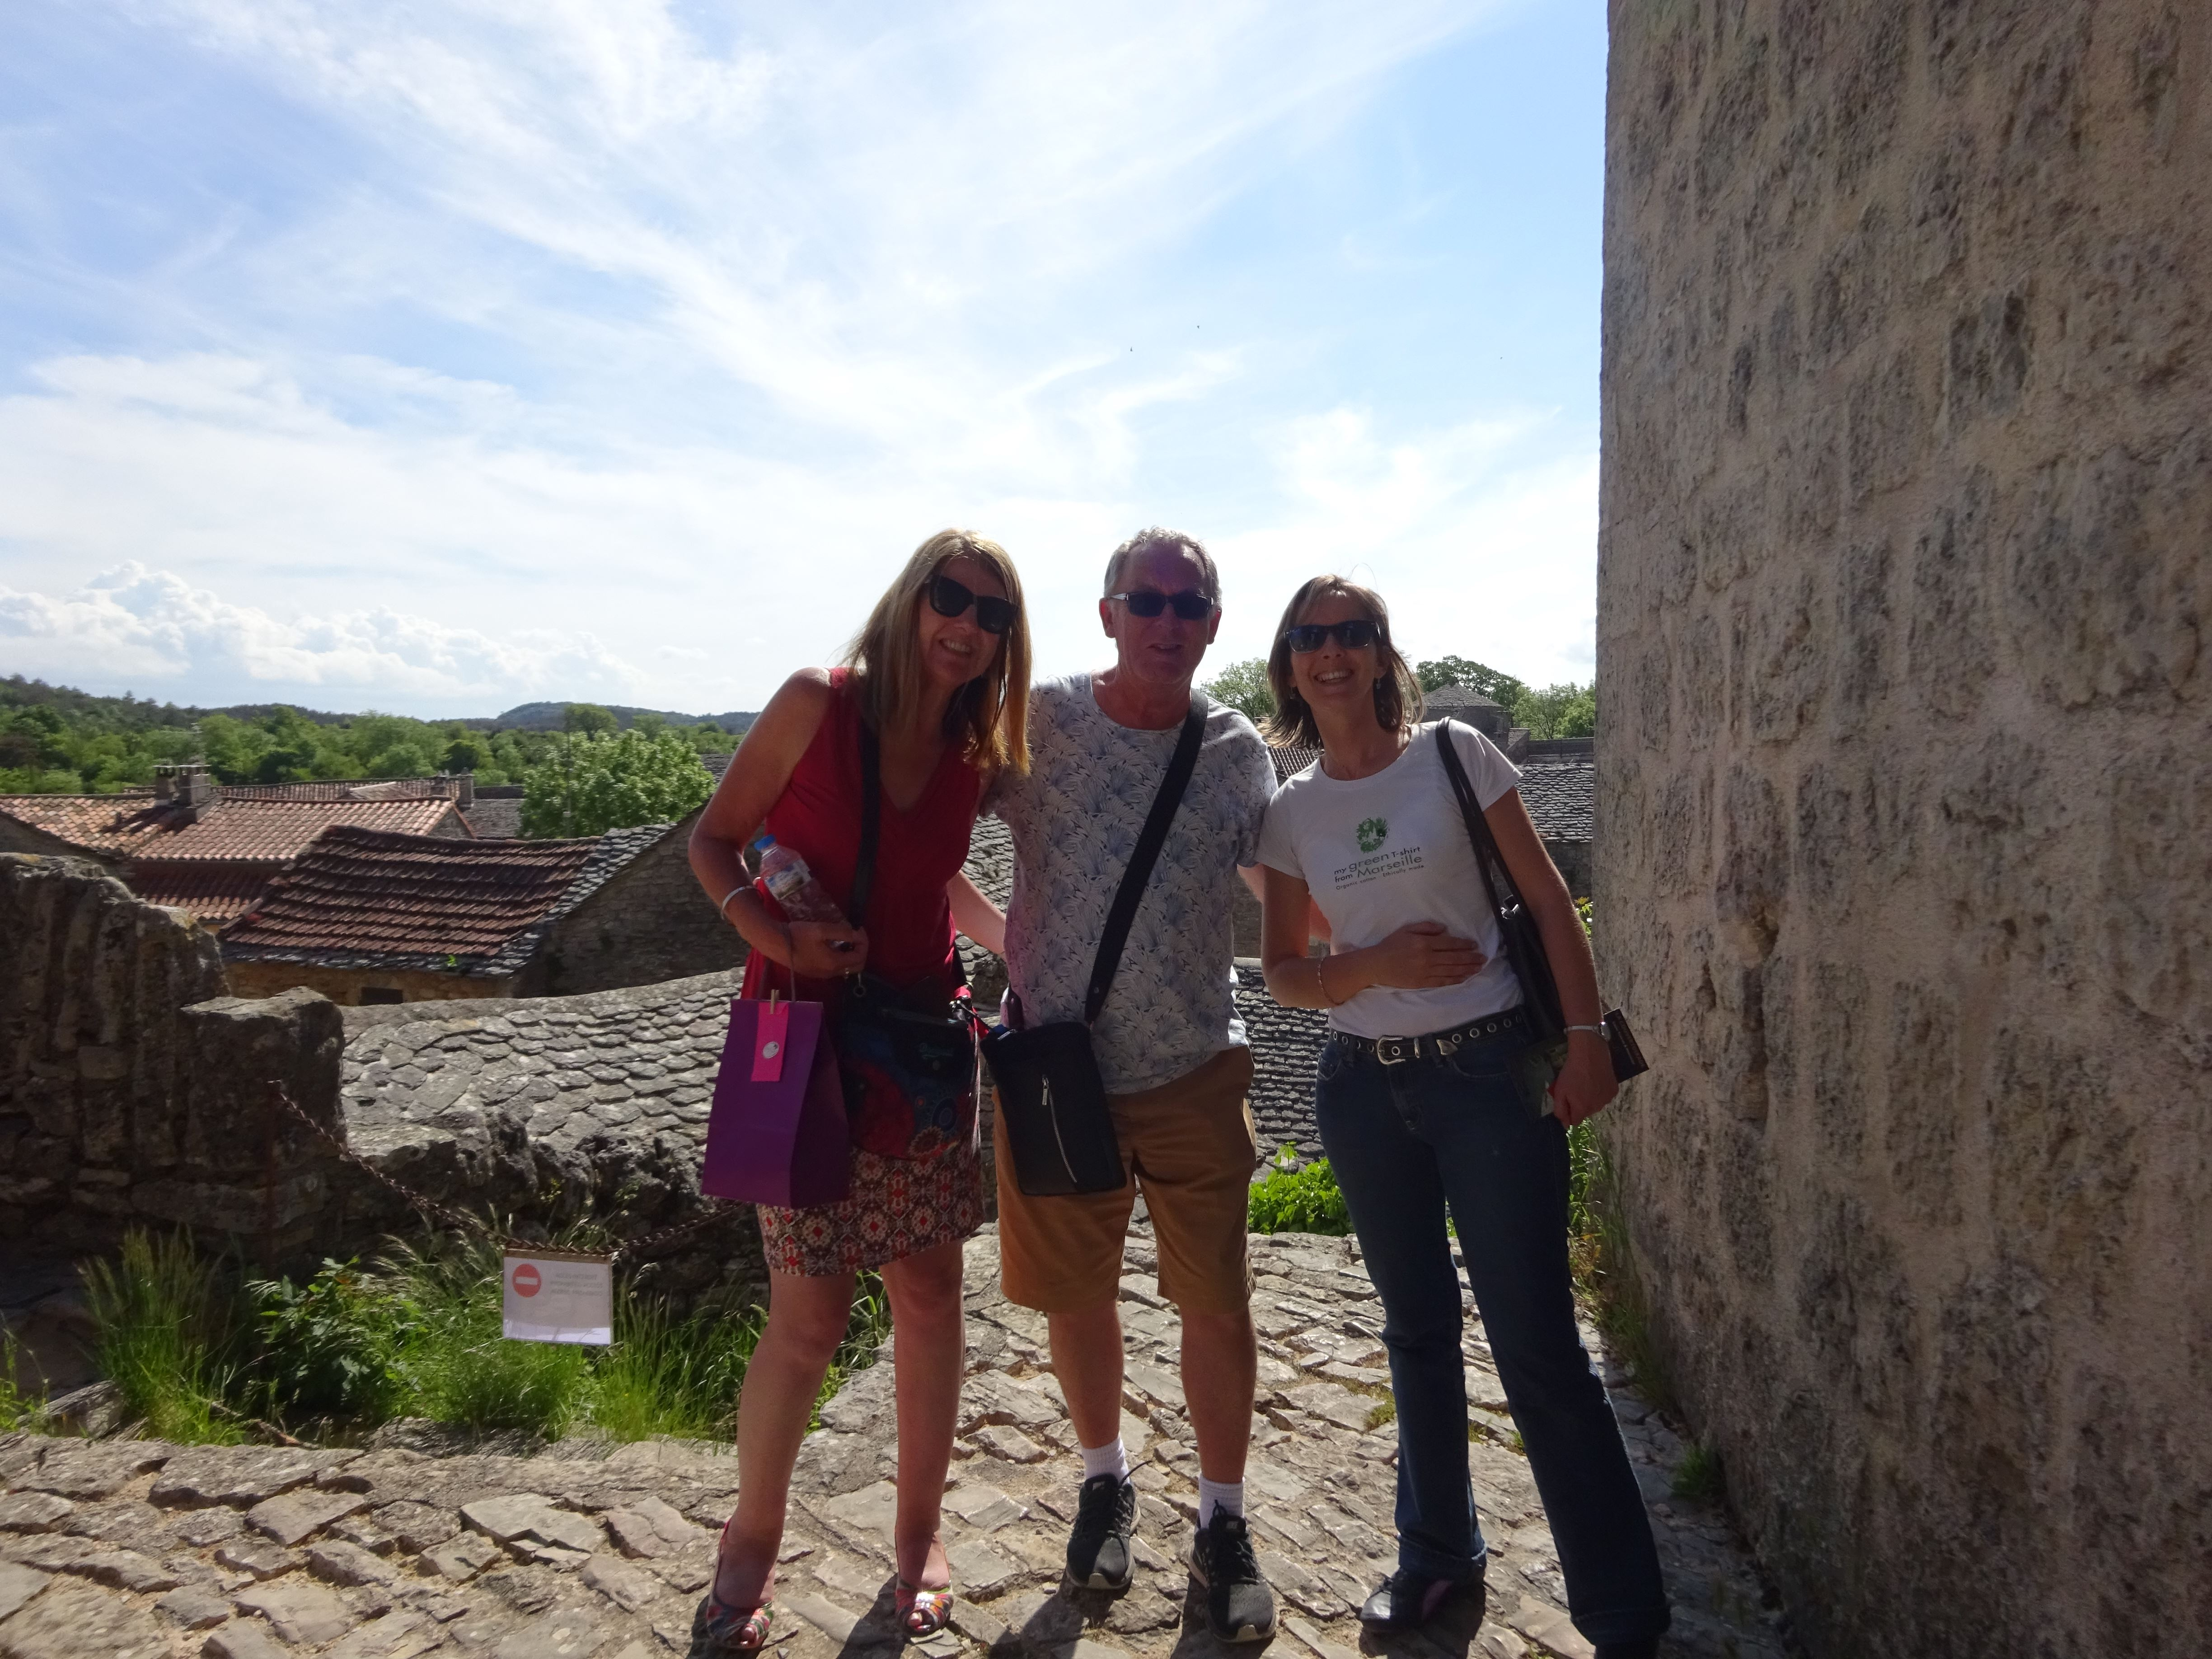 Nature, flavors and history getaway in Aveyron